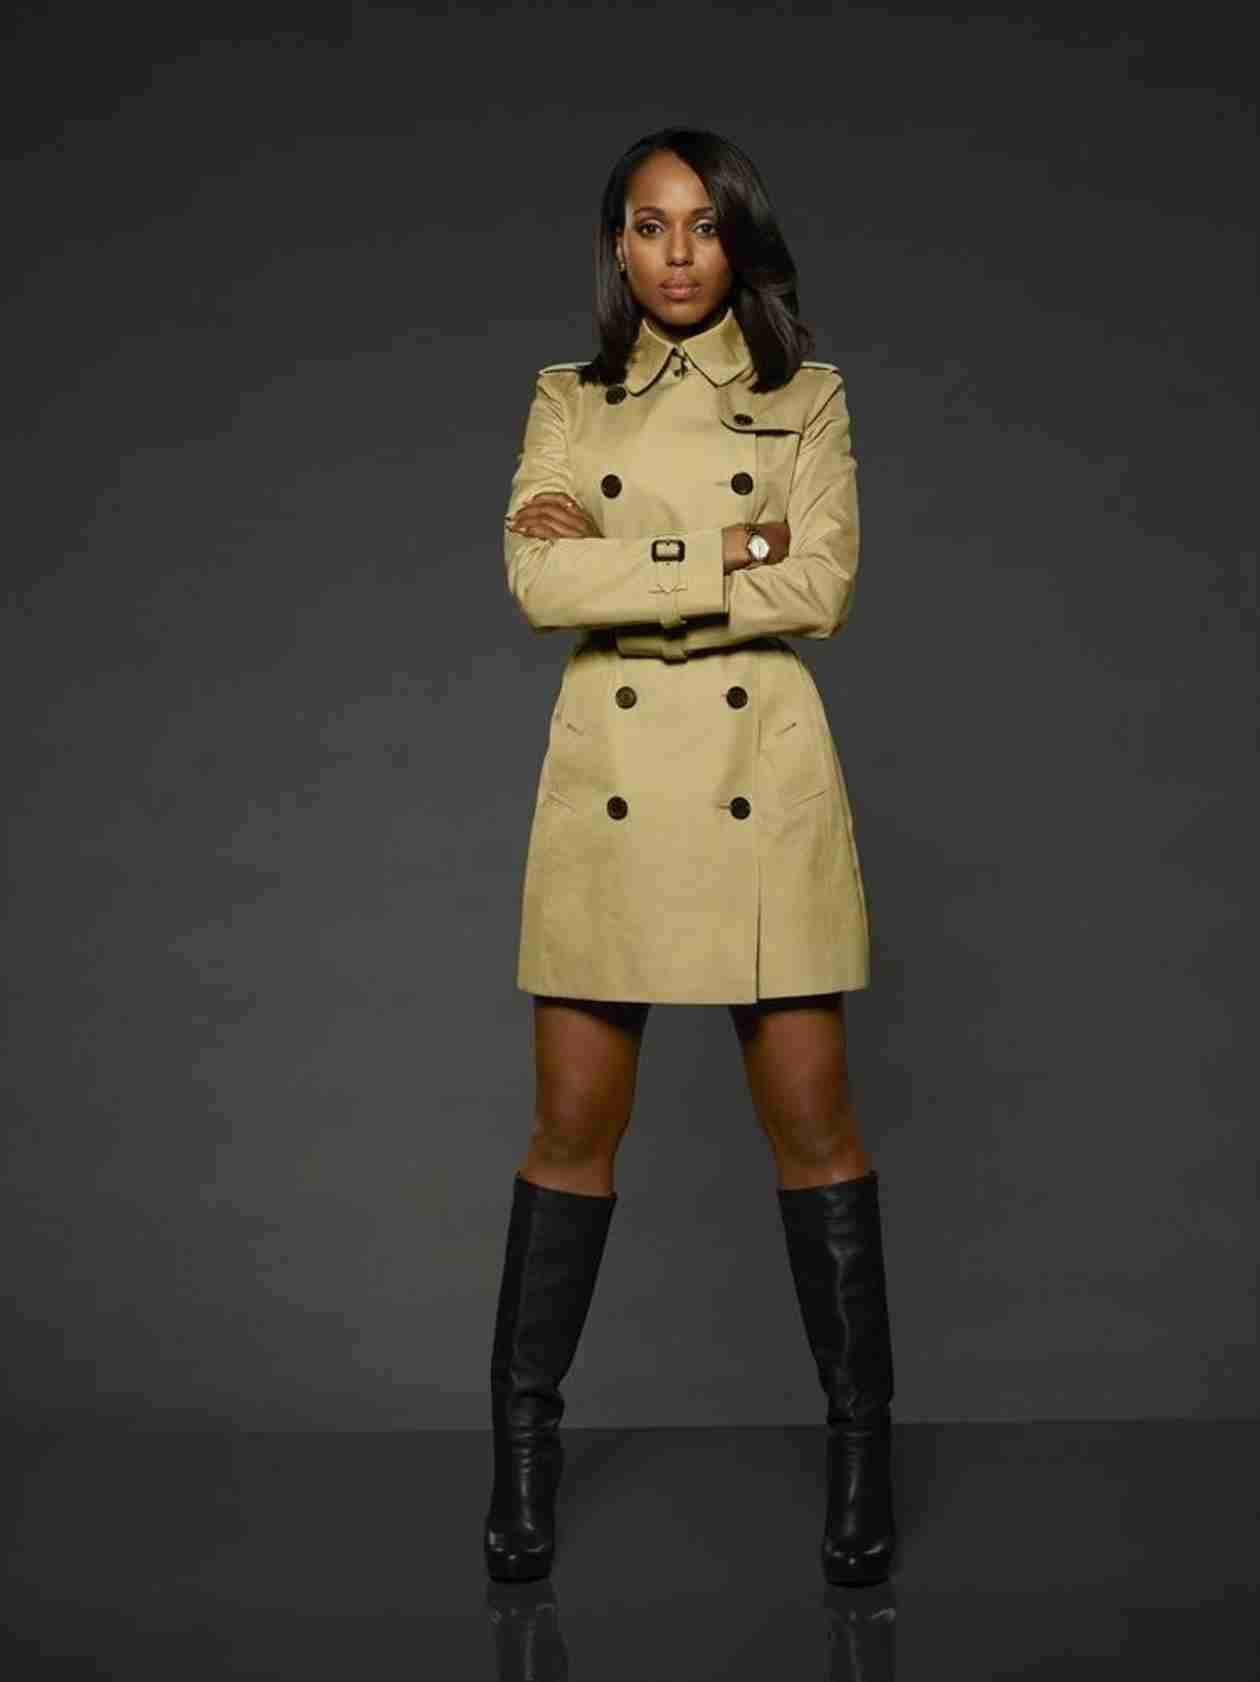 Kerry Washington and Other Scandal Stars Get Major Emmy Love!